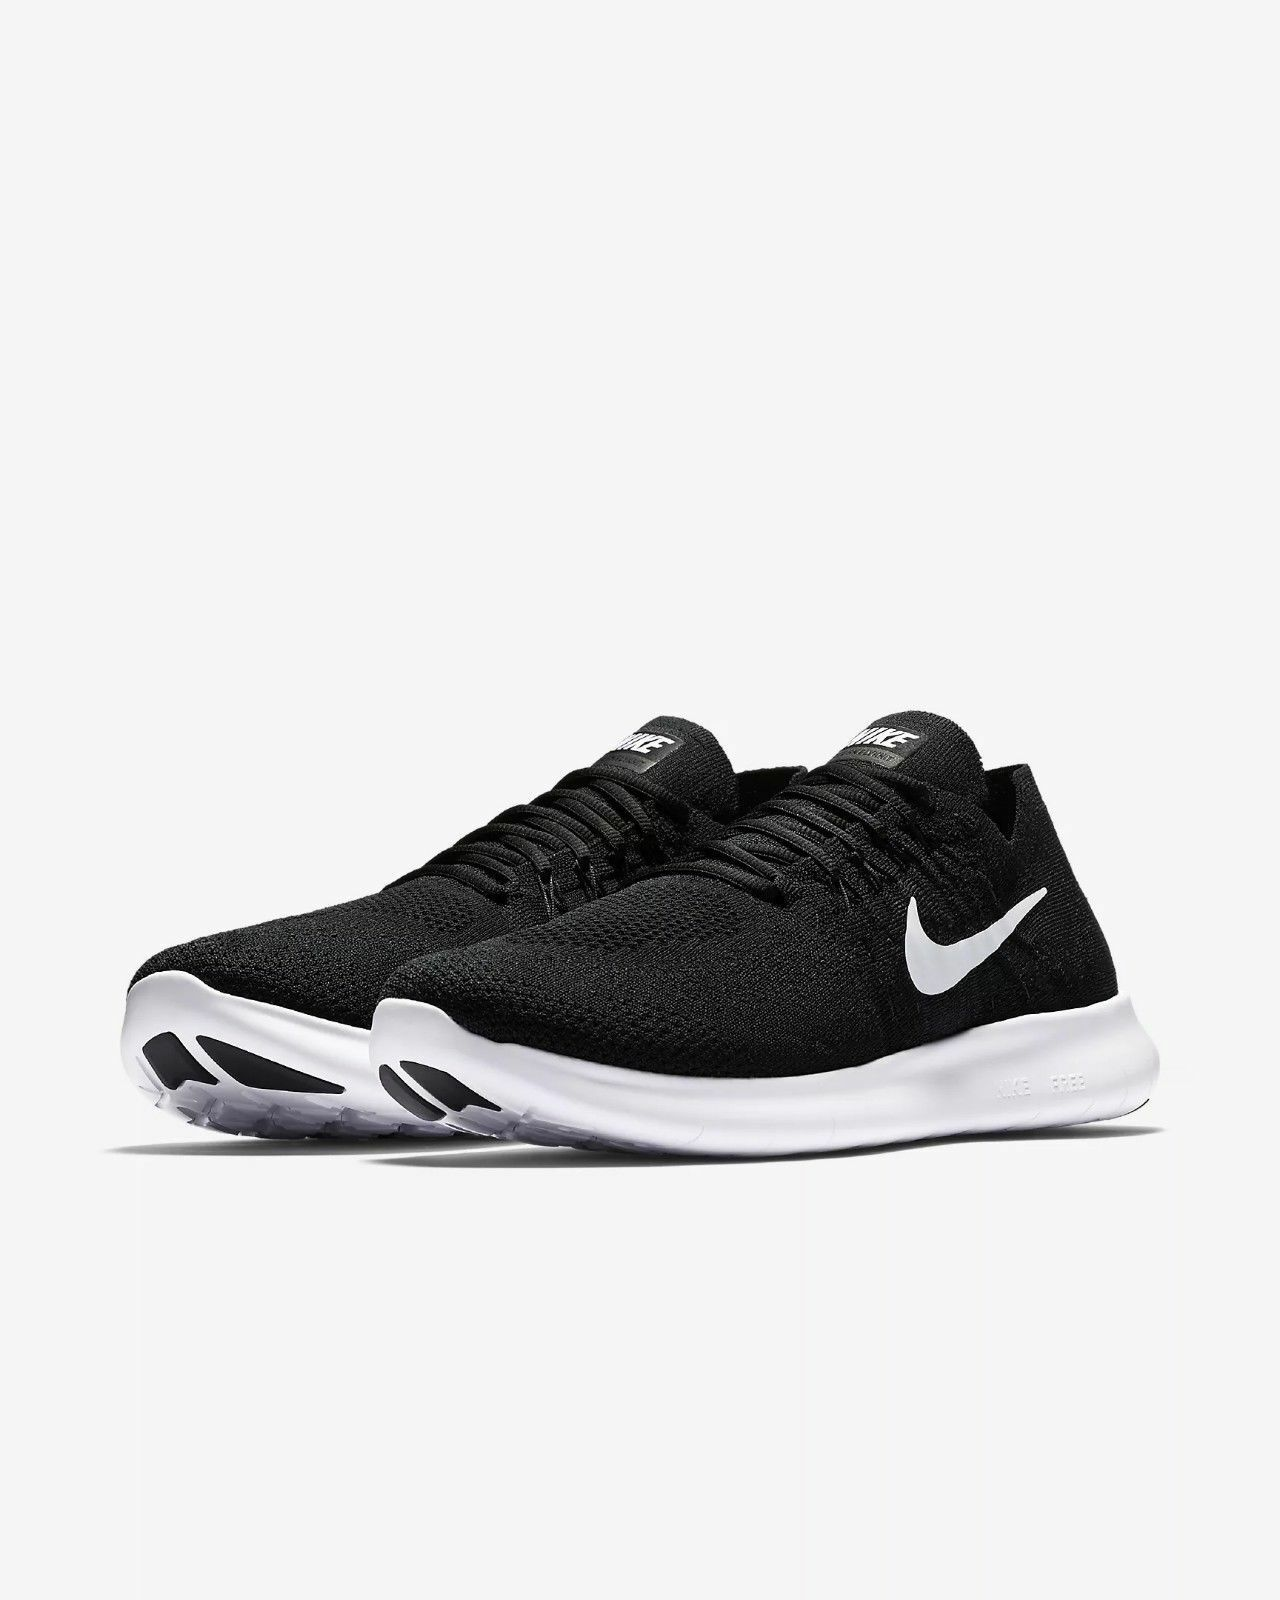 The latest discount shoes for men and women Men's Nike Free RN Flyknit 2018 Running Black/White Comfortable